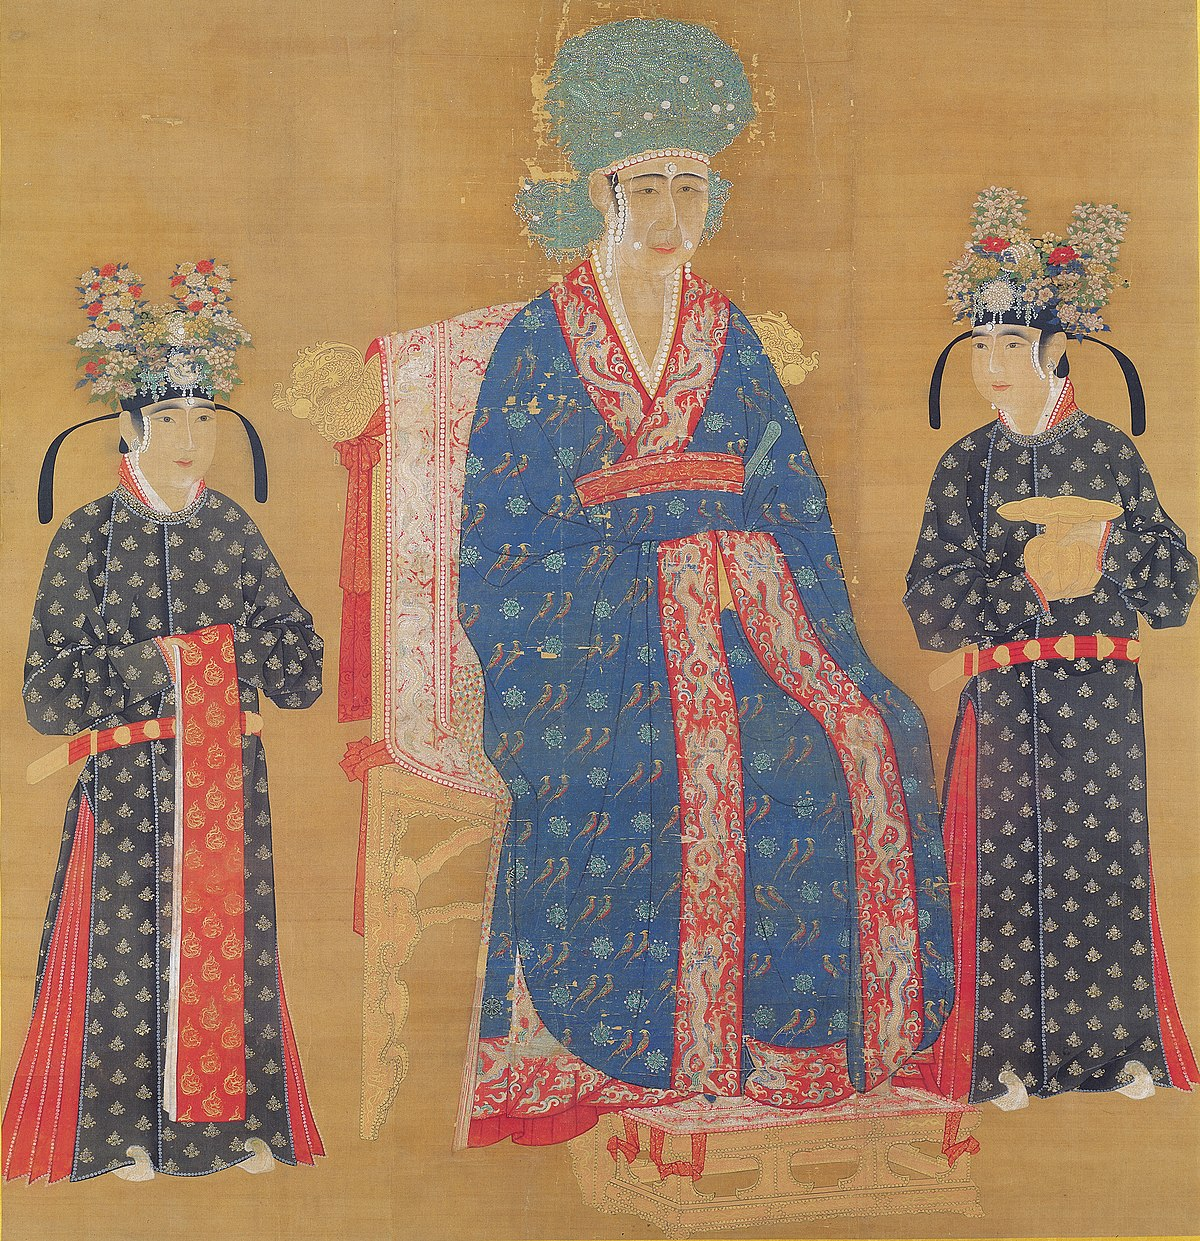 song dynasty and its significance in chinese history essay China: dynasties essay china: dynasties essay  essay on song dynasty and tang  history of china and shang dynasty divided essay.